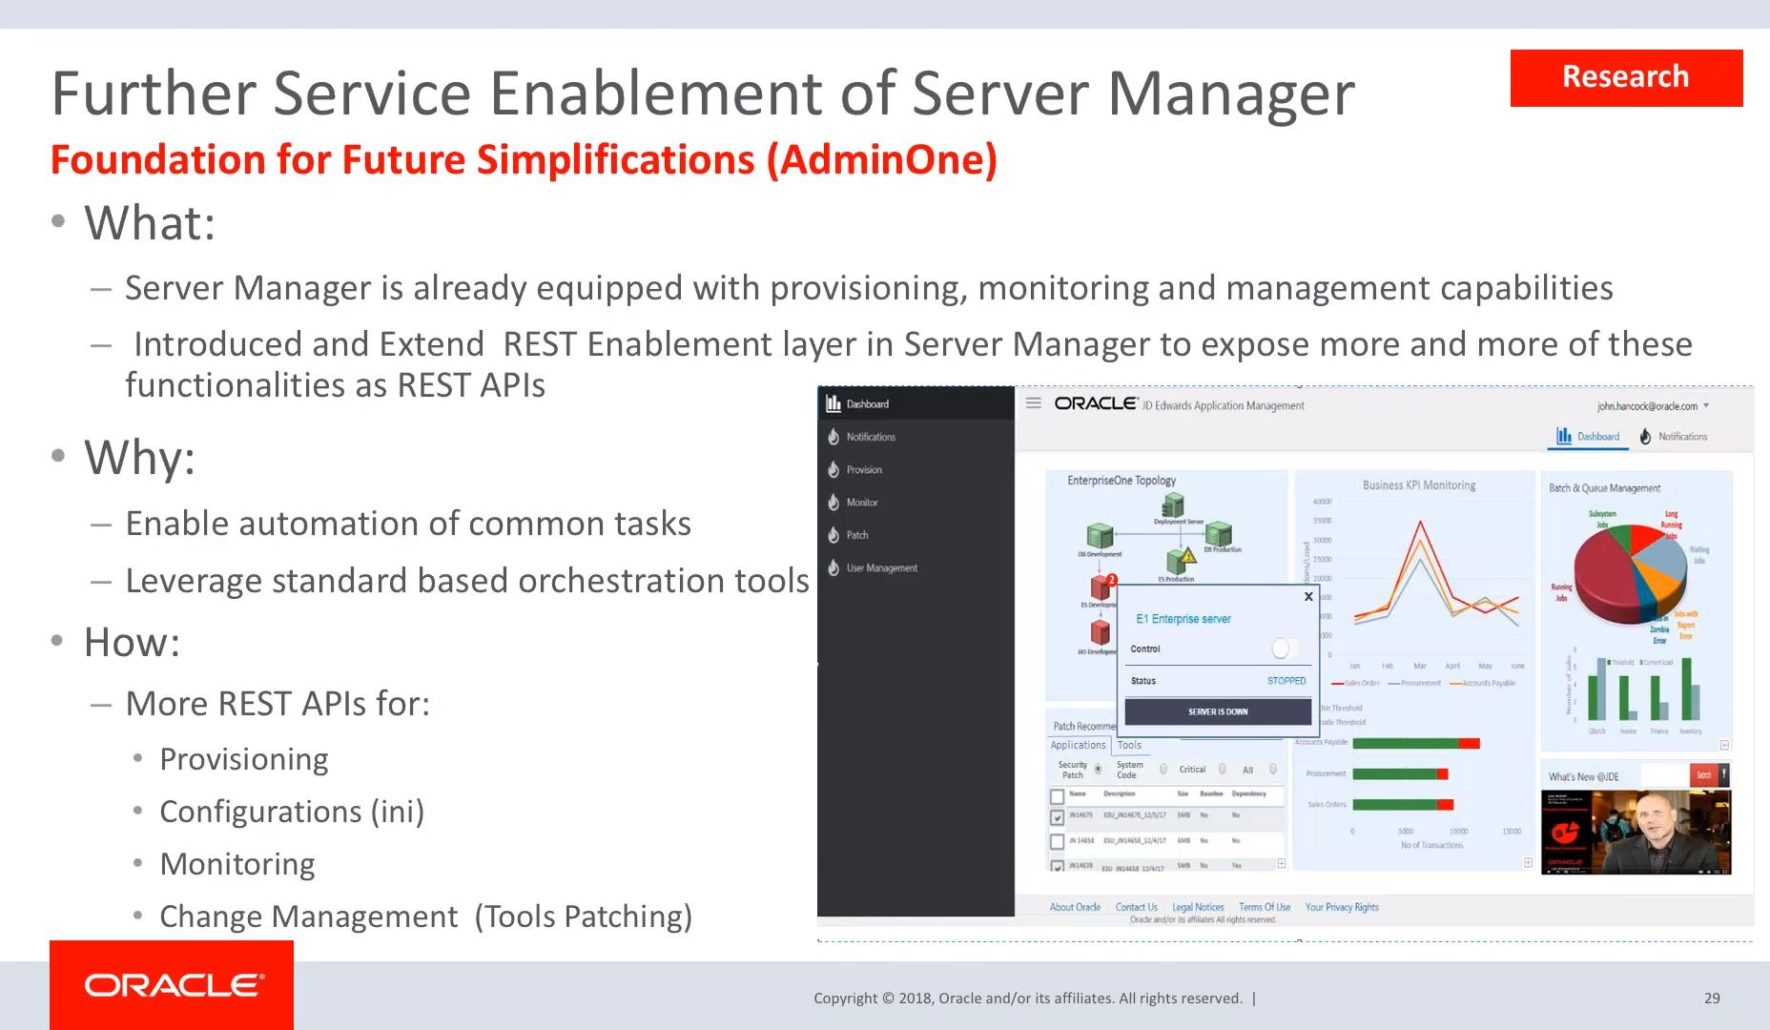 JD Edwards EnterpriseOne Server Manager: Simplifications and